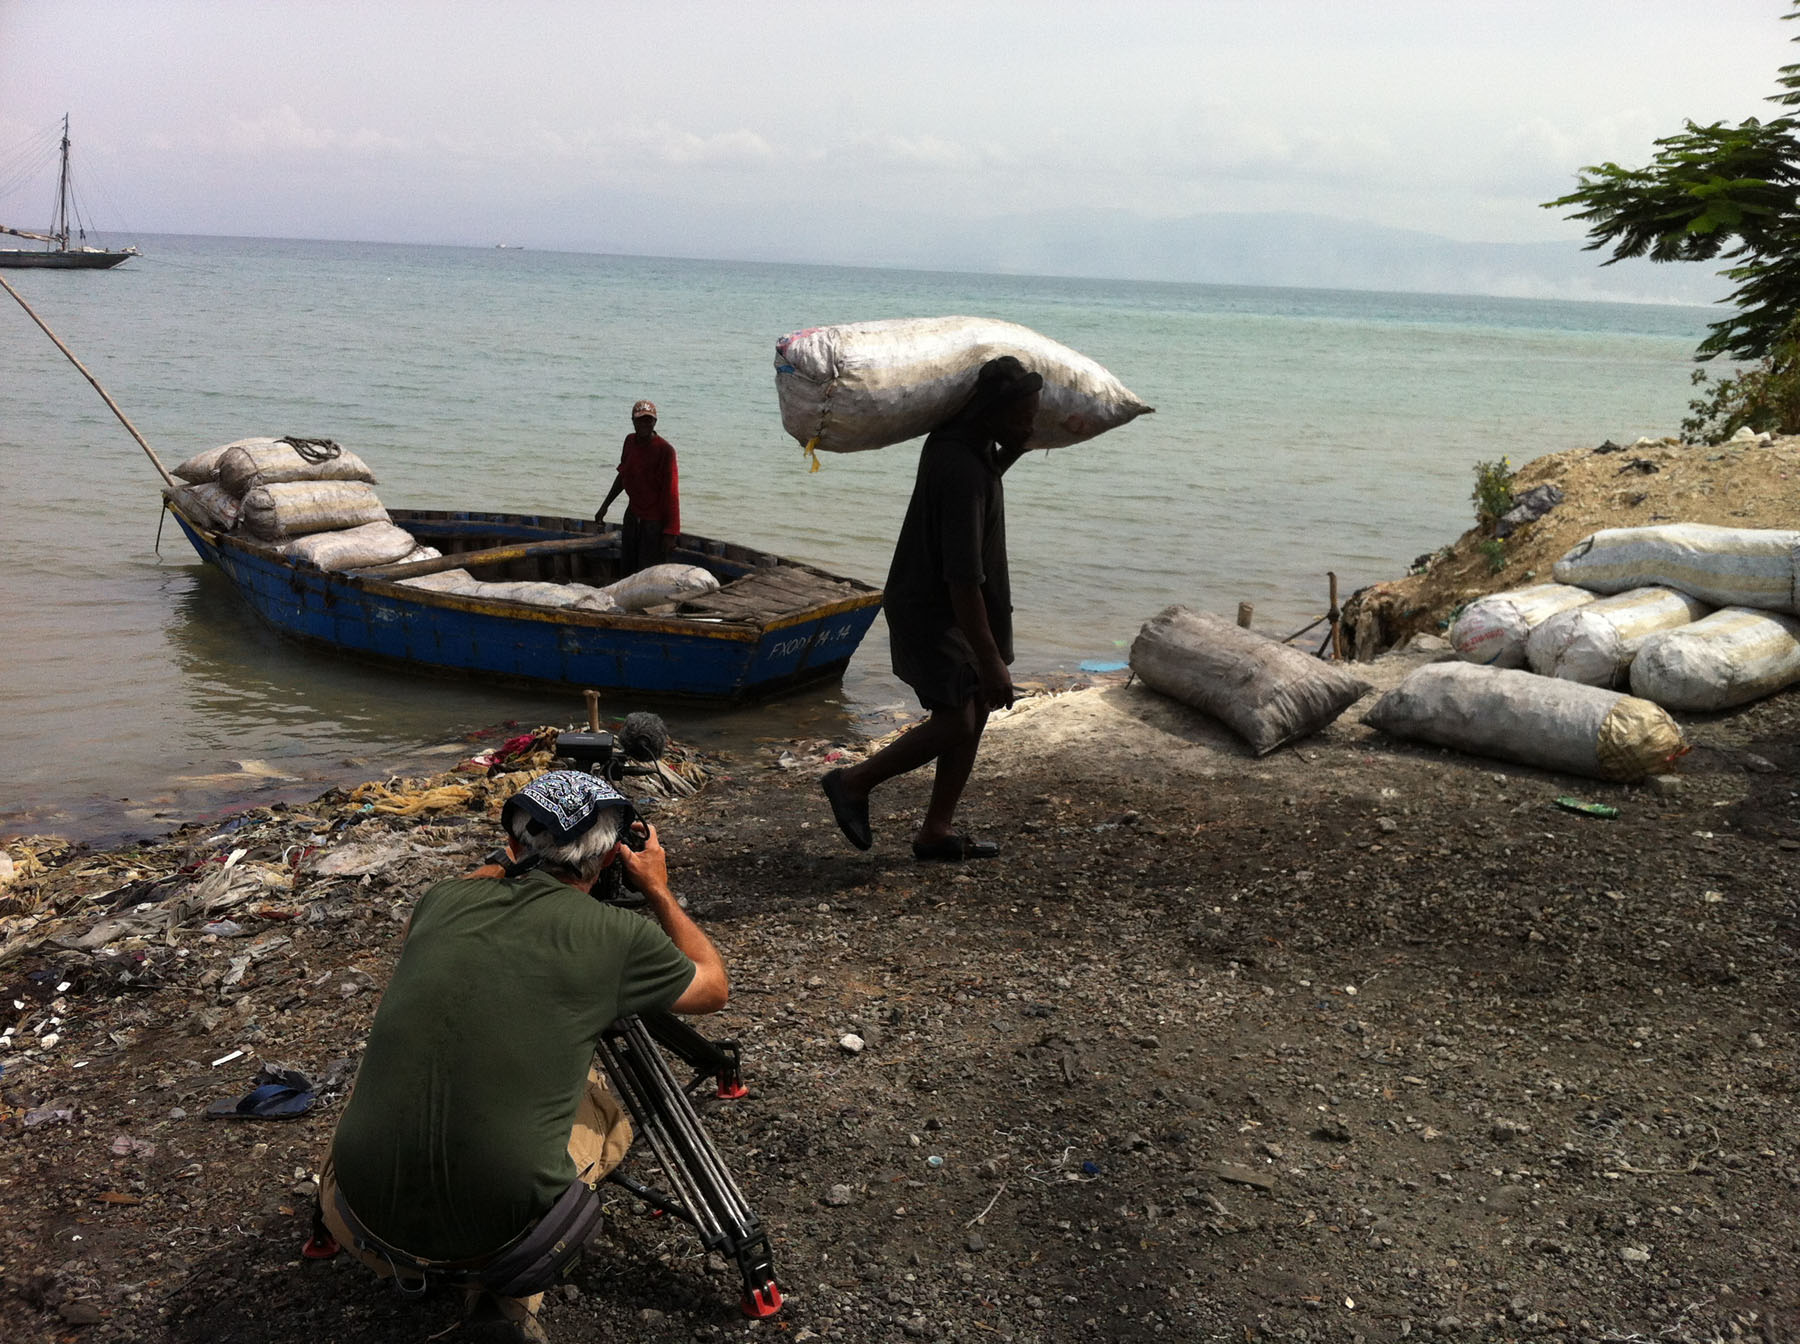 Charcoal port, Port au Prince, Haiti. Worker unloads sacks of charcoal.